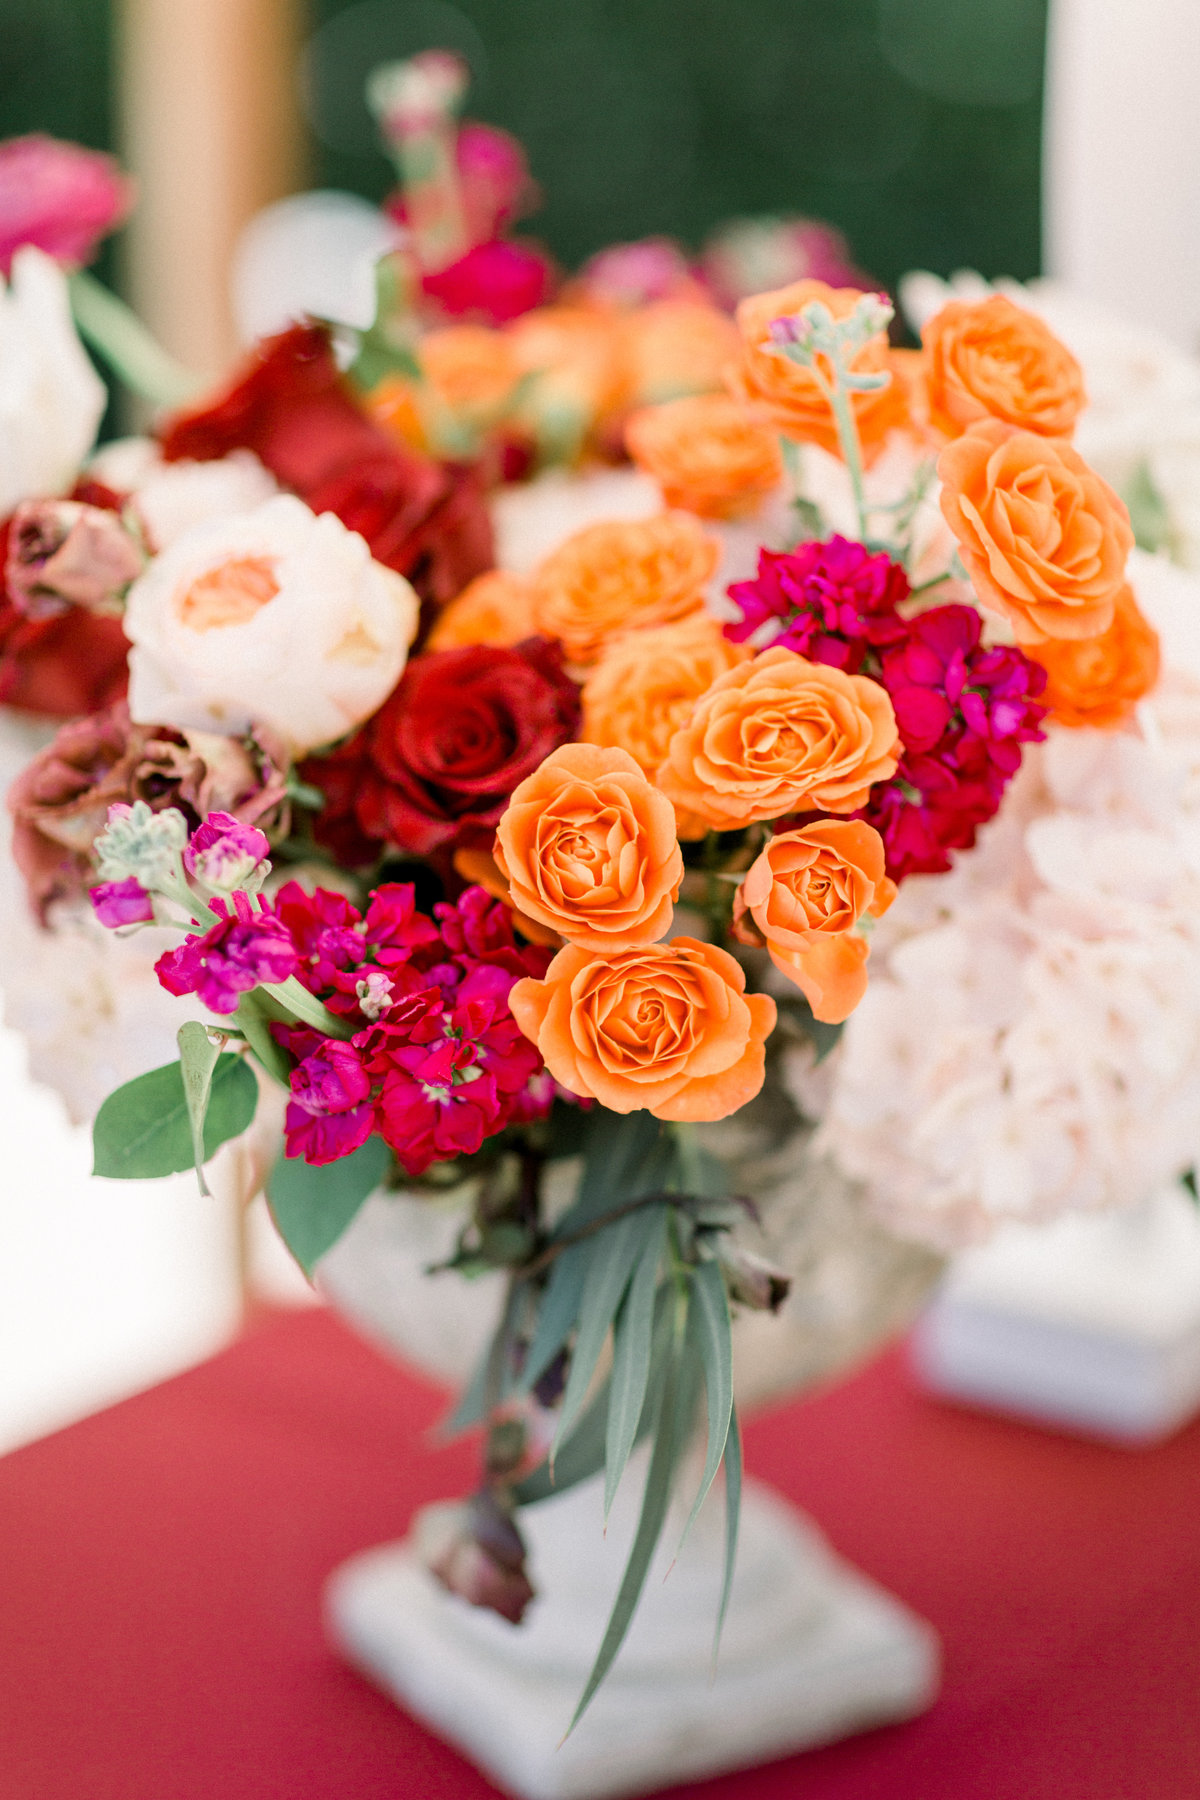 Wedding floral centerpiece with orange and mauve flowers at Maravilla Gardens wedding